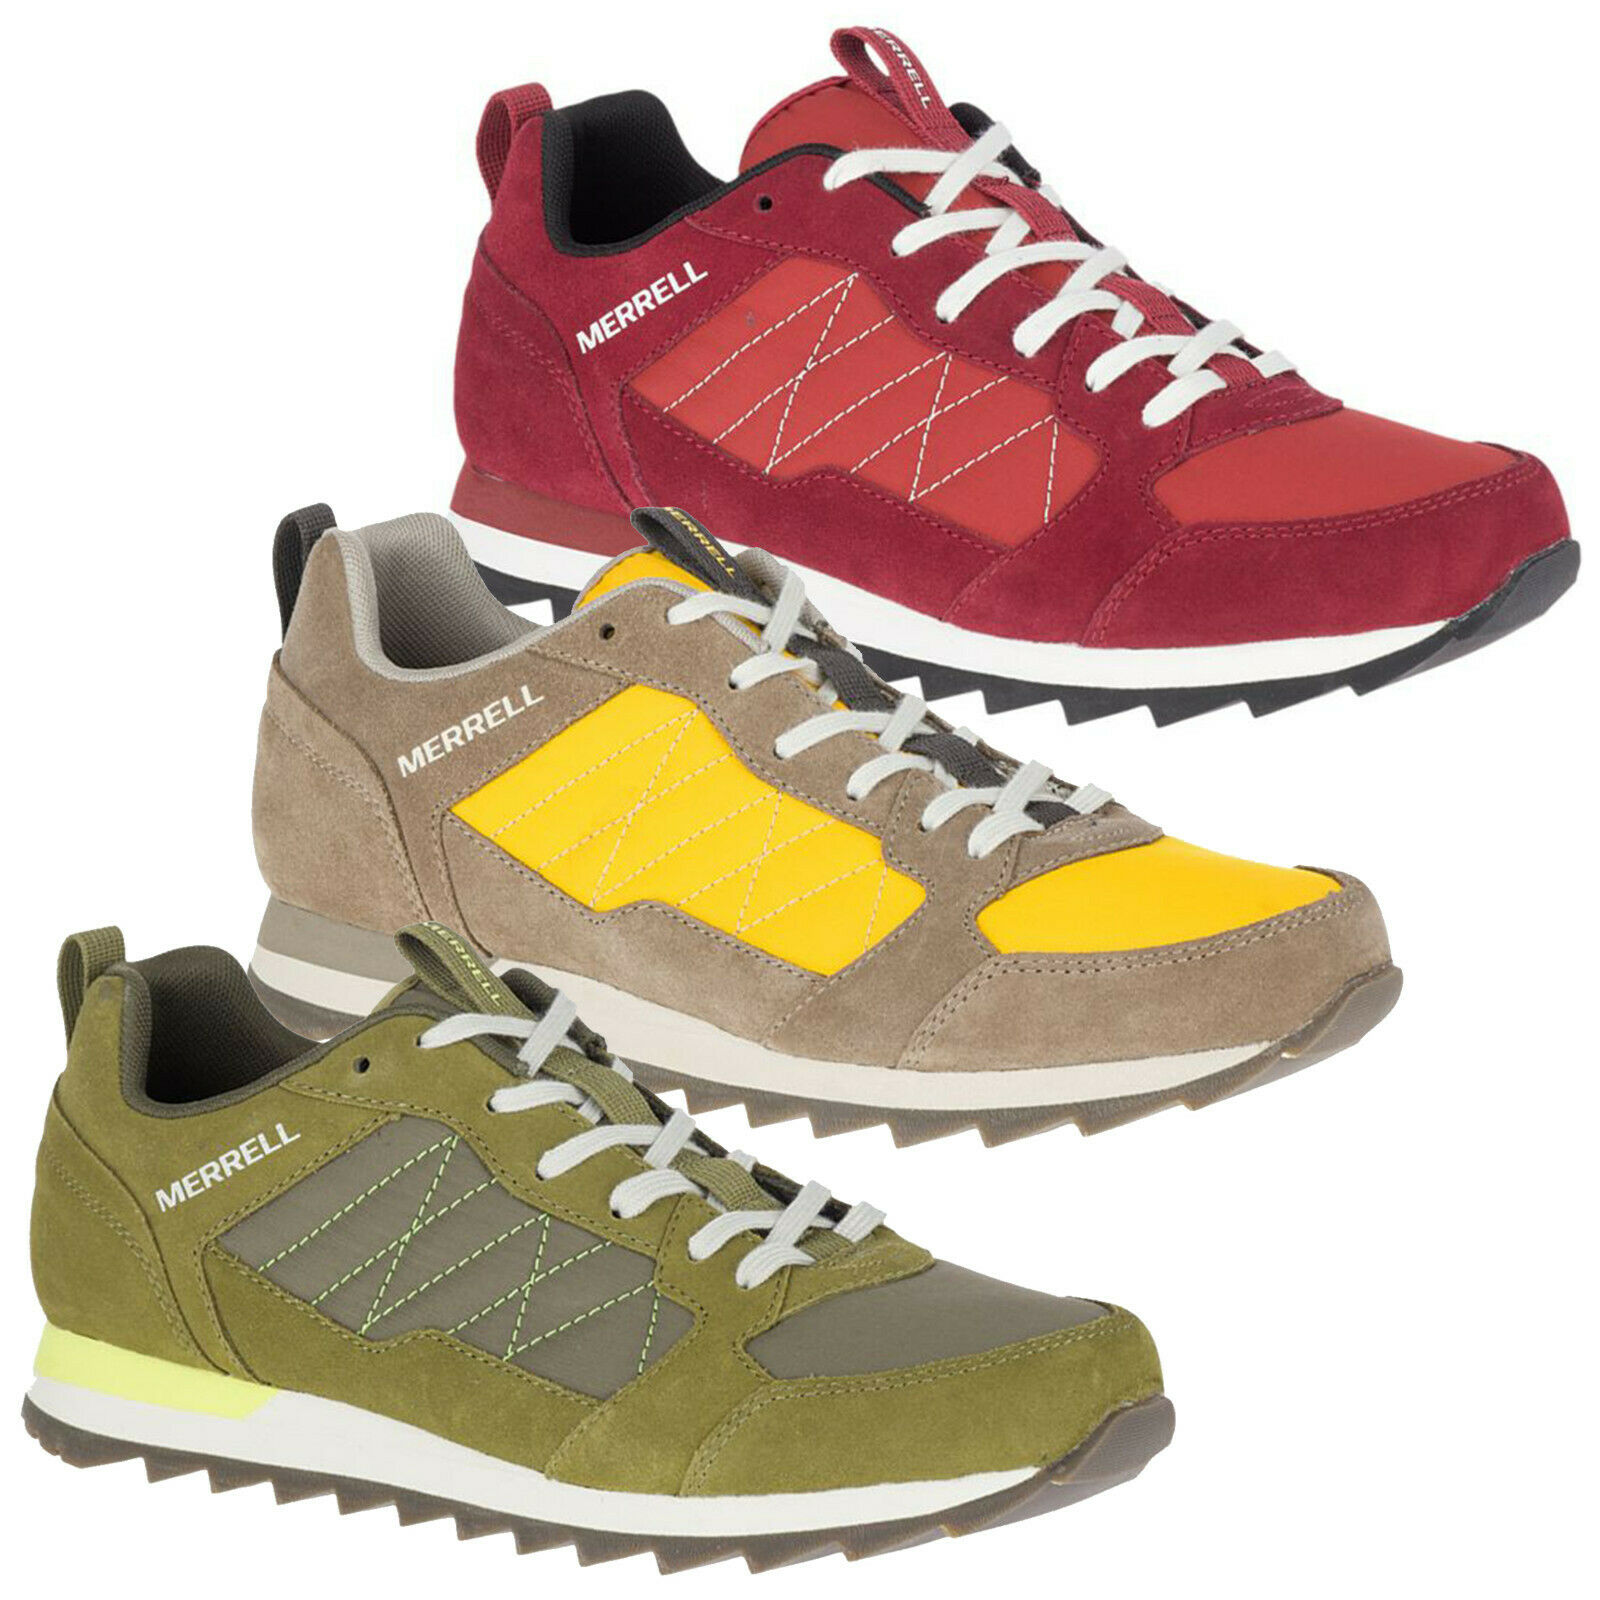 Royal Mail UK Mens Casual Sports Running Shoes Sneakers Ankle Boots Trainers